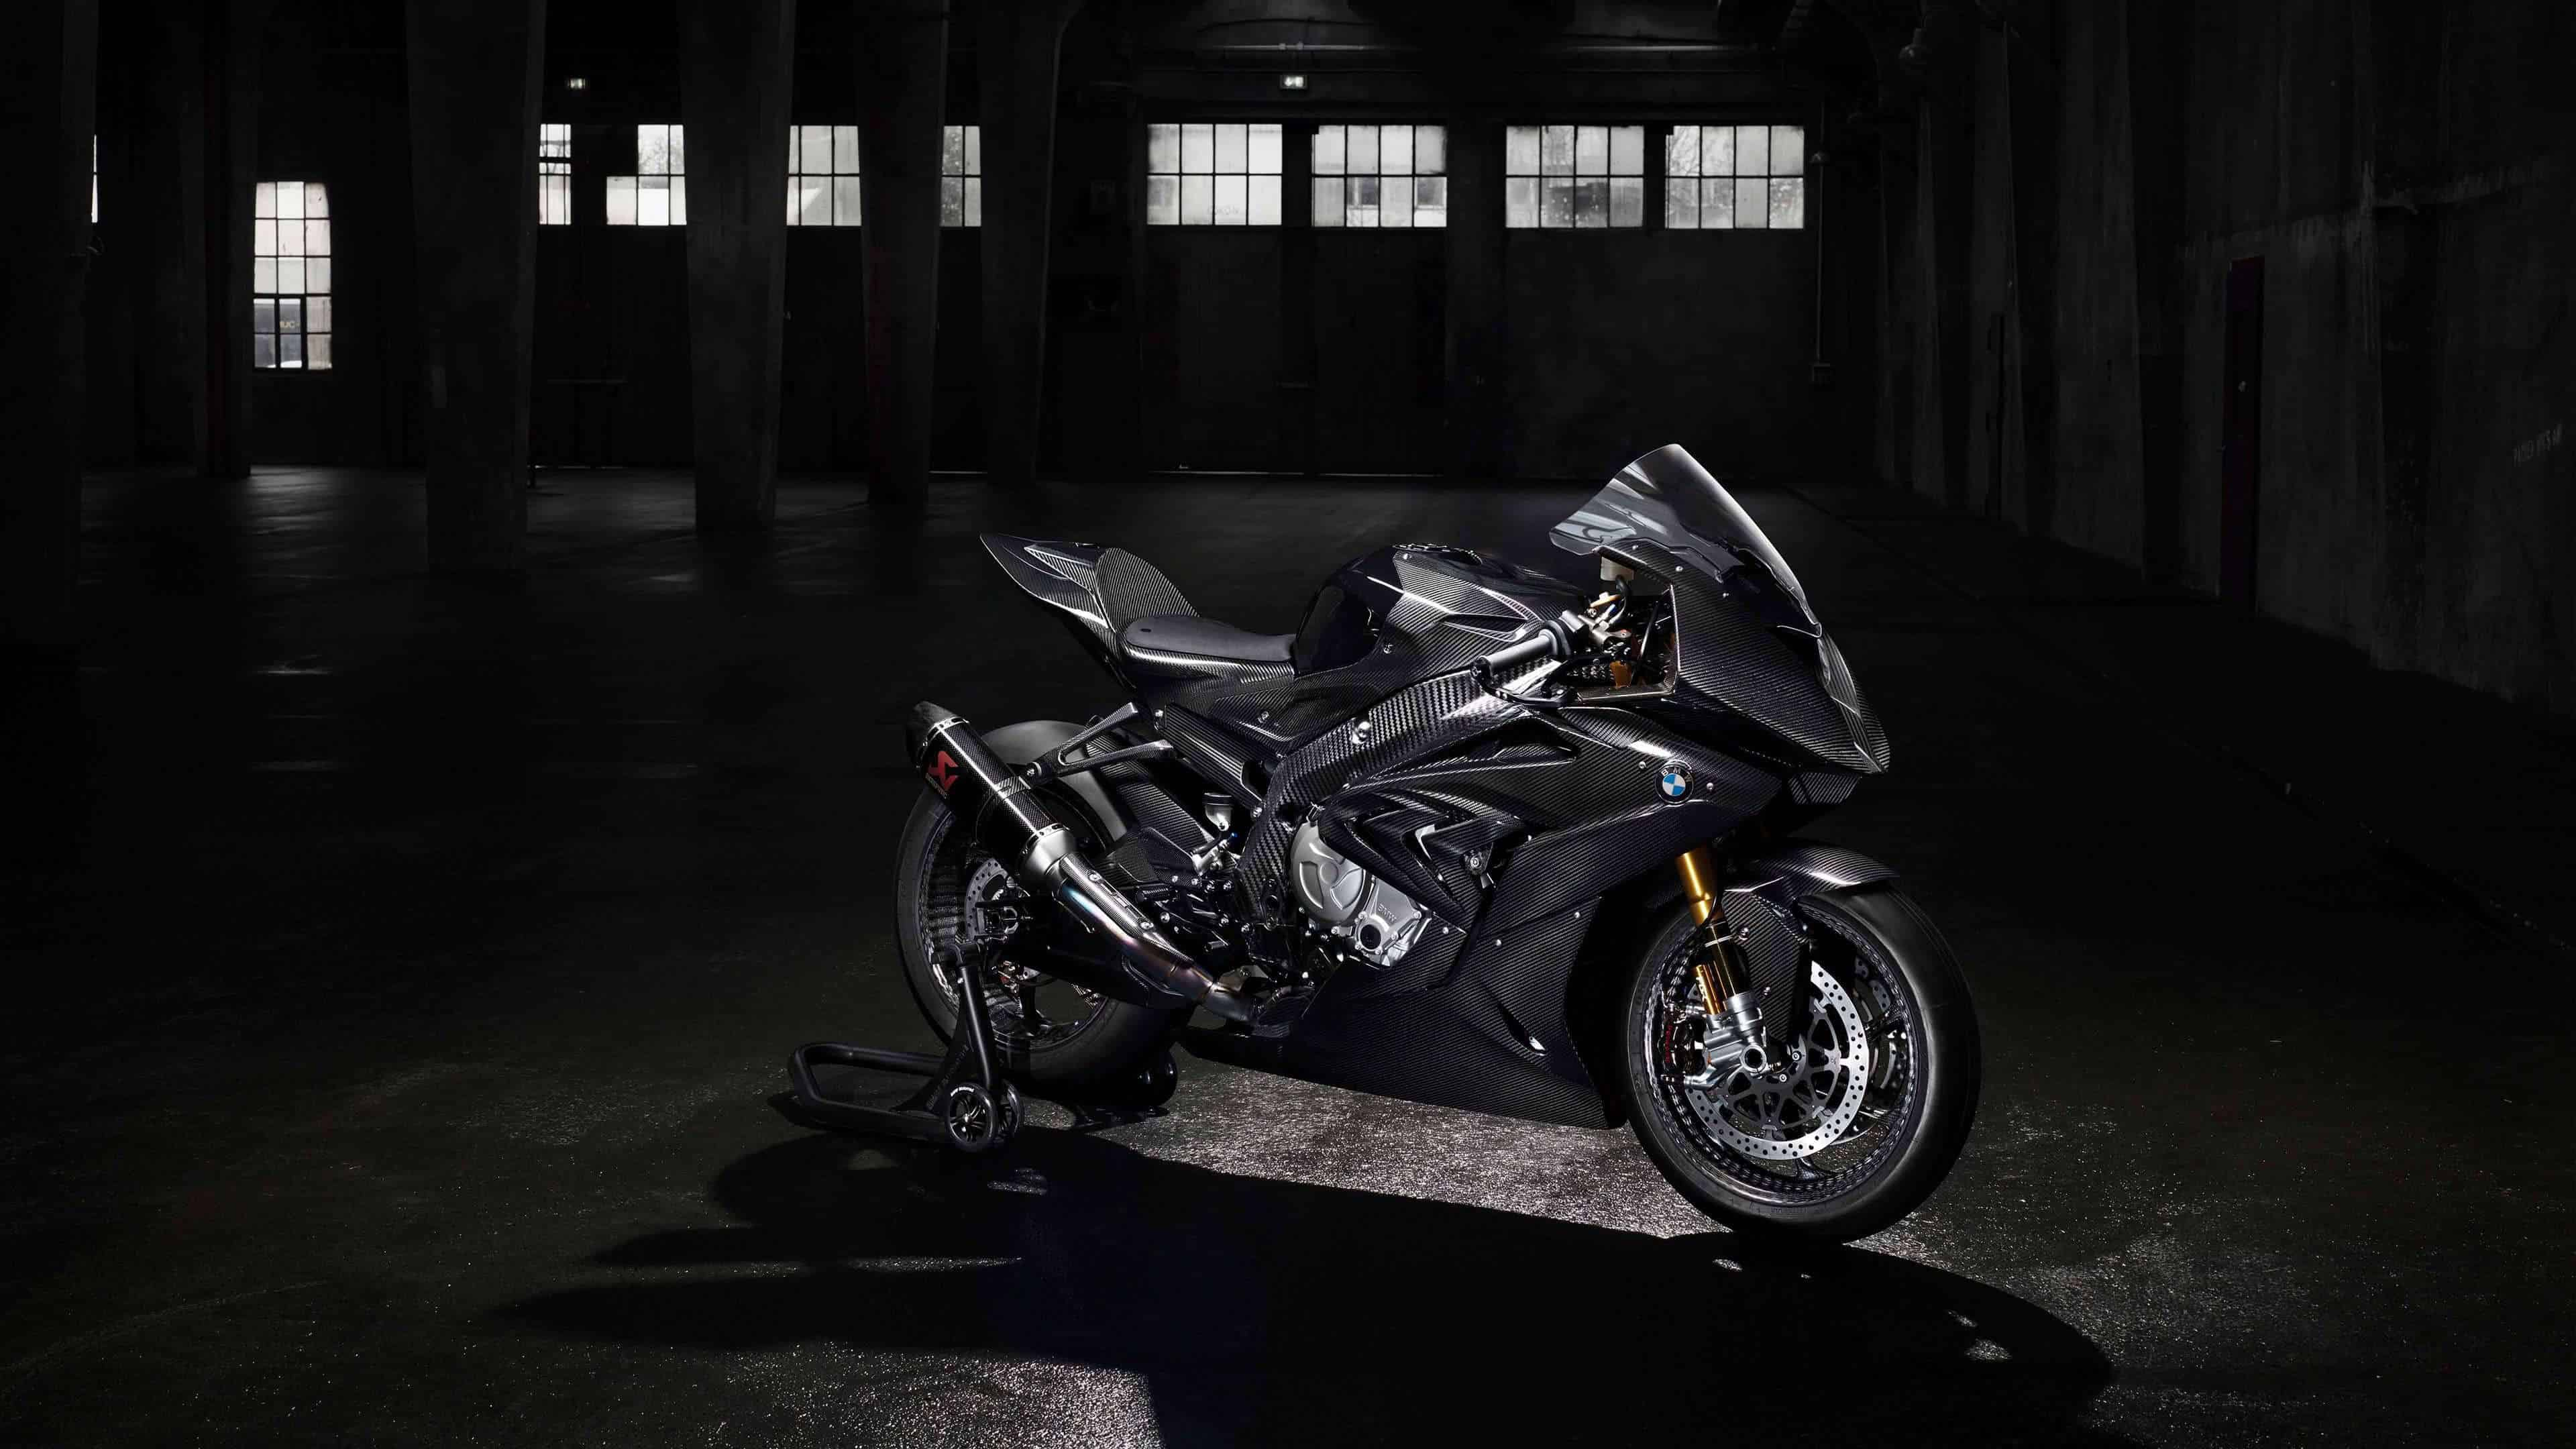 BMW HP4 Race UHD 4K Wallpaper Pixelz 3840x2160